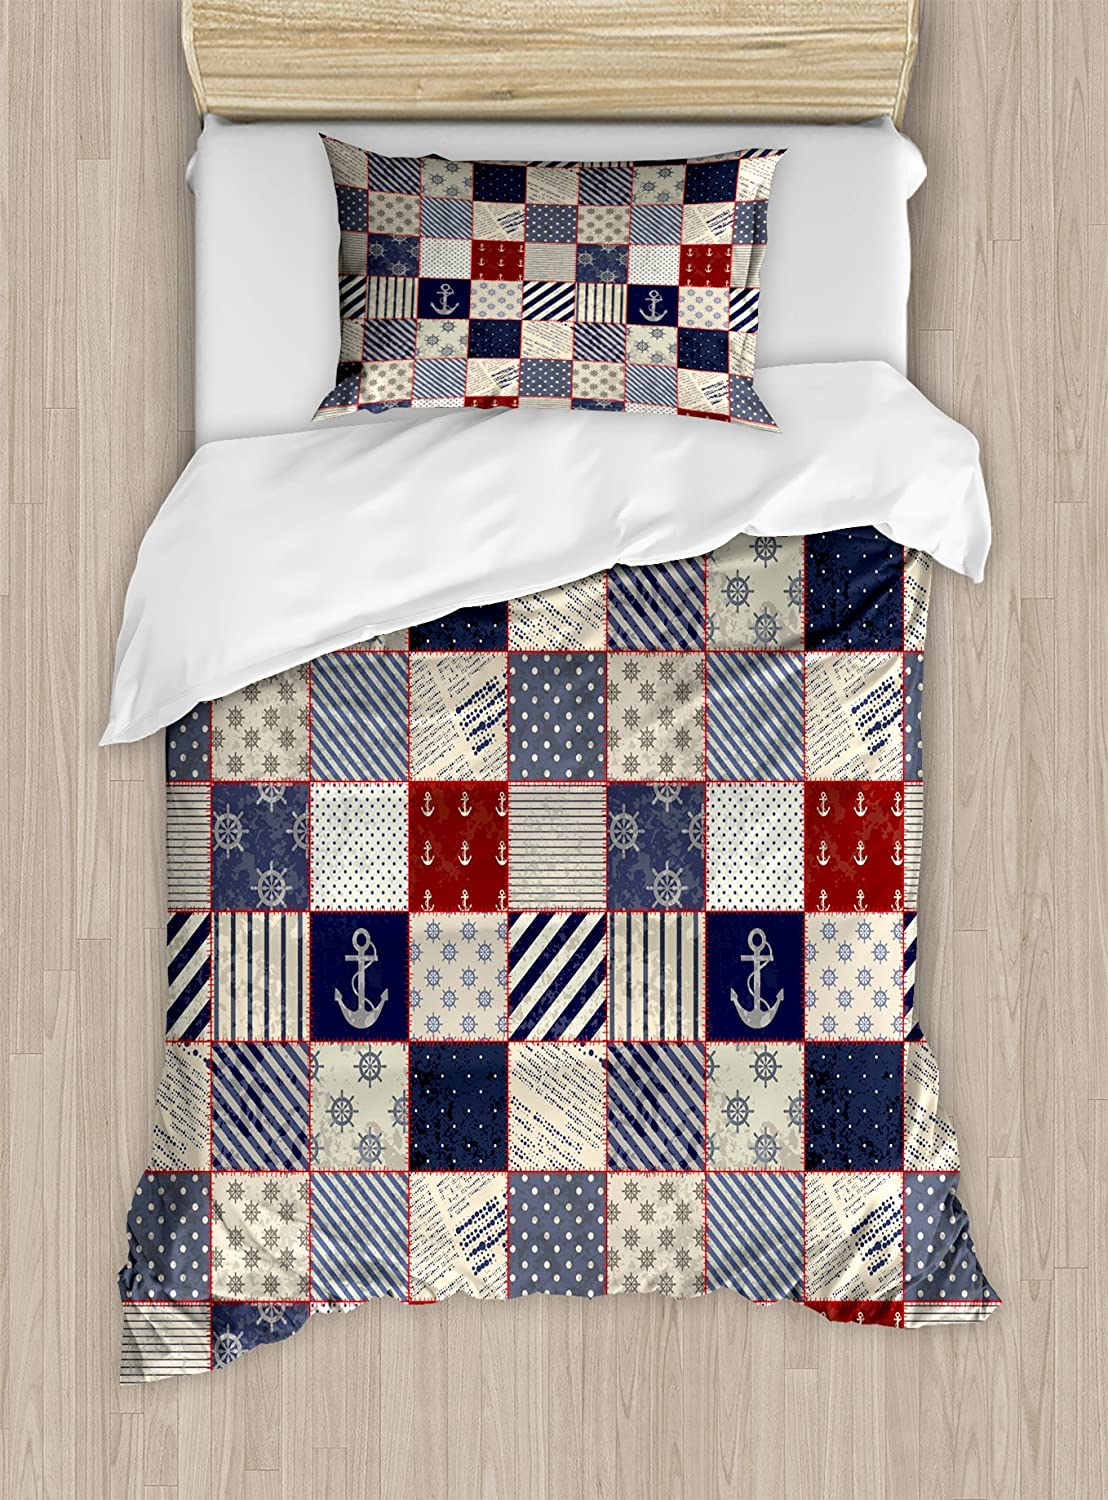 Lunarable Geometric Duvet Cover Set, Checkered Pattern with Pale Nautical Design Elements Grunge Effect, Decorative 2 Piece Bedding Set with 1 Pillow Sham, Twin Size, Navy Blue